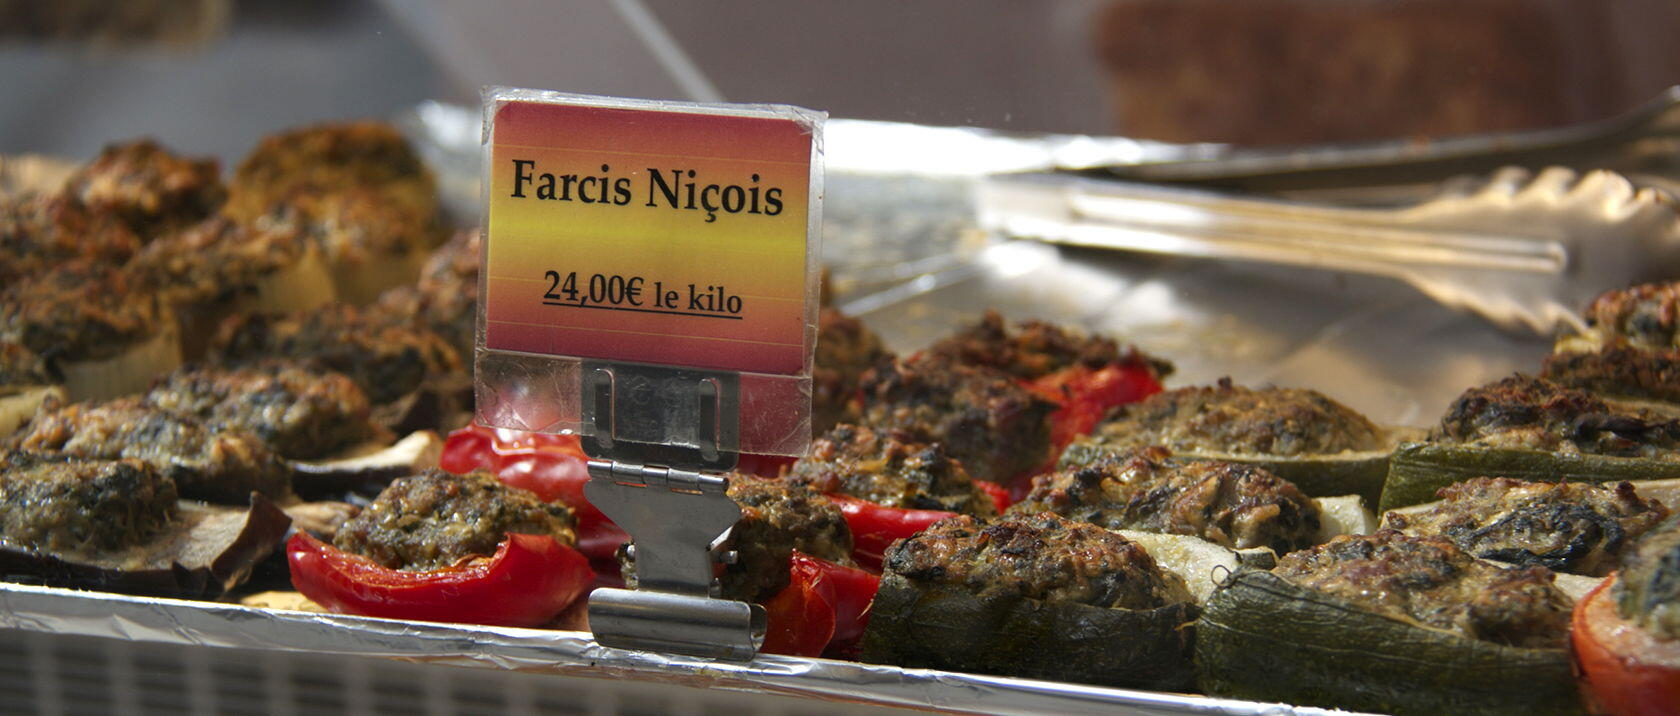 Petits Farcis Nice Food Foodies Food Tour Nice Cote d'Azur